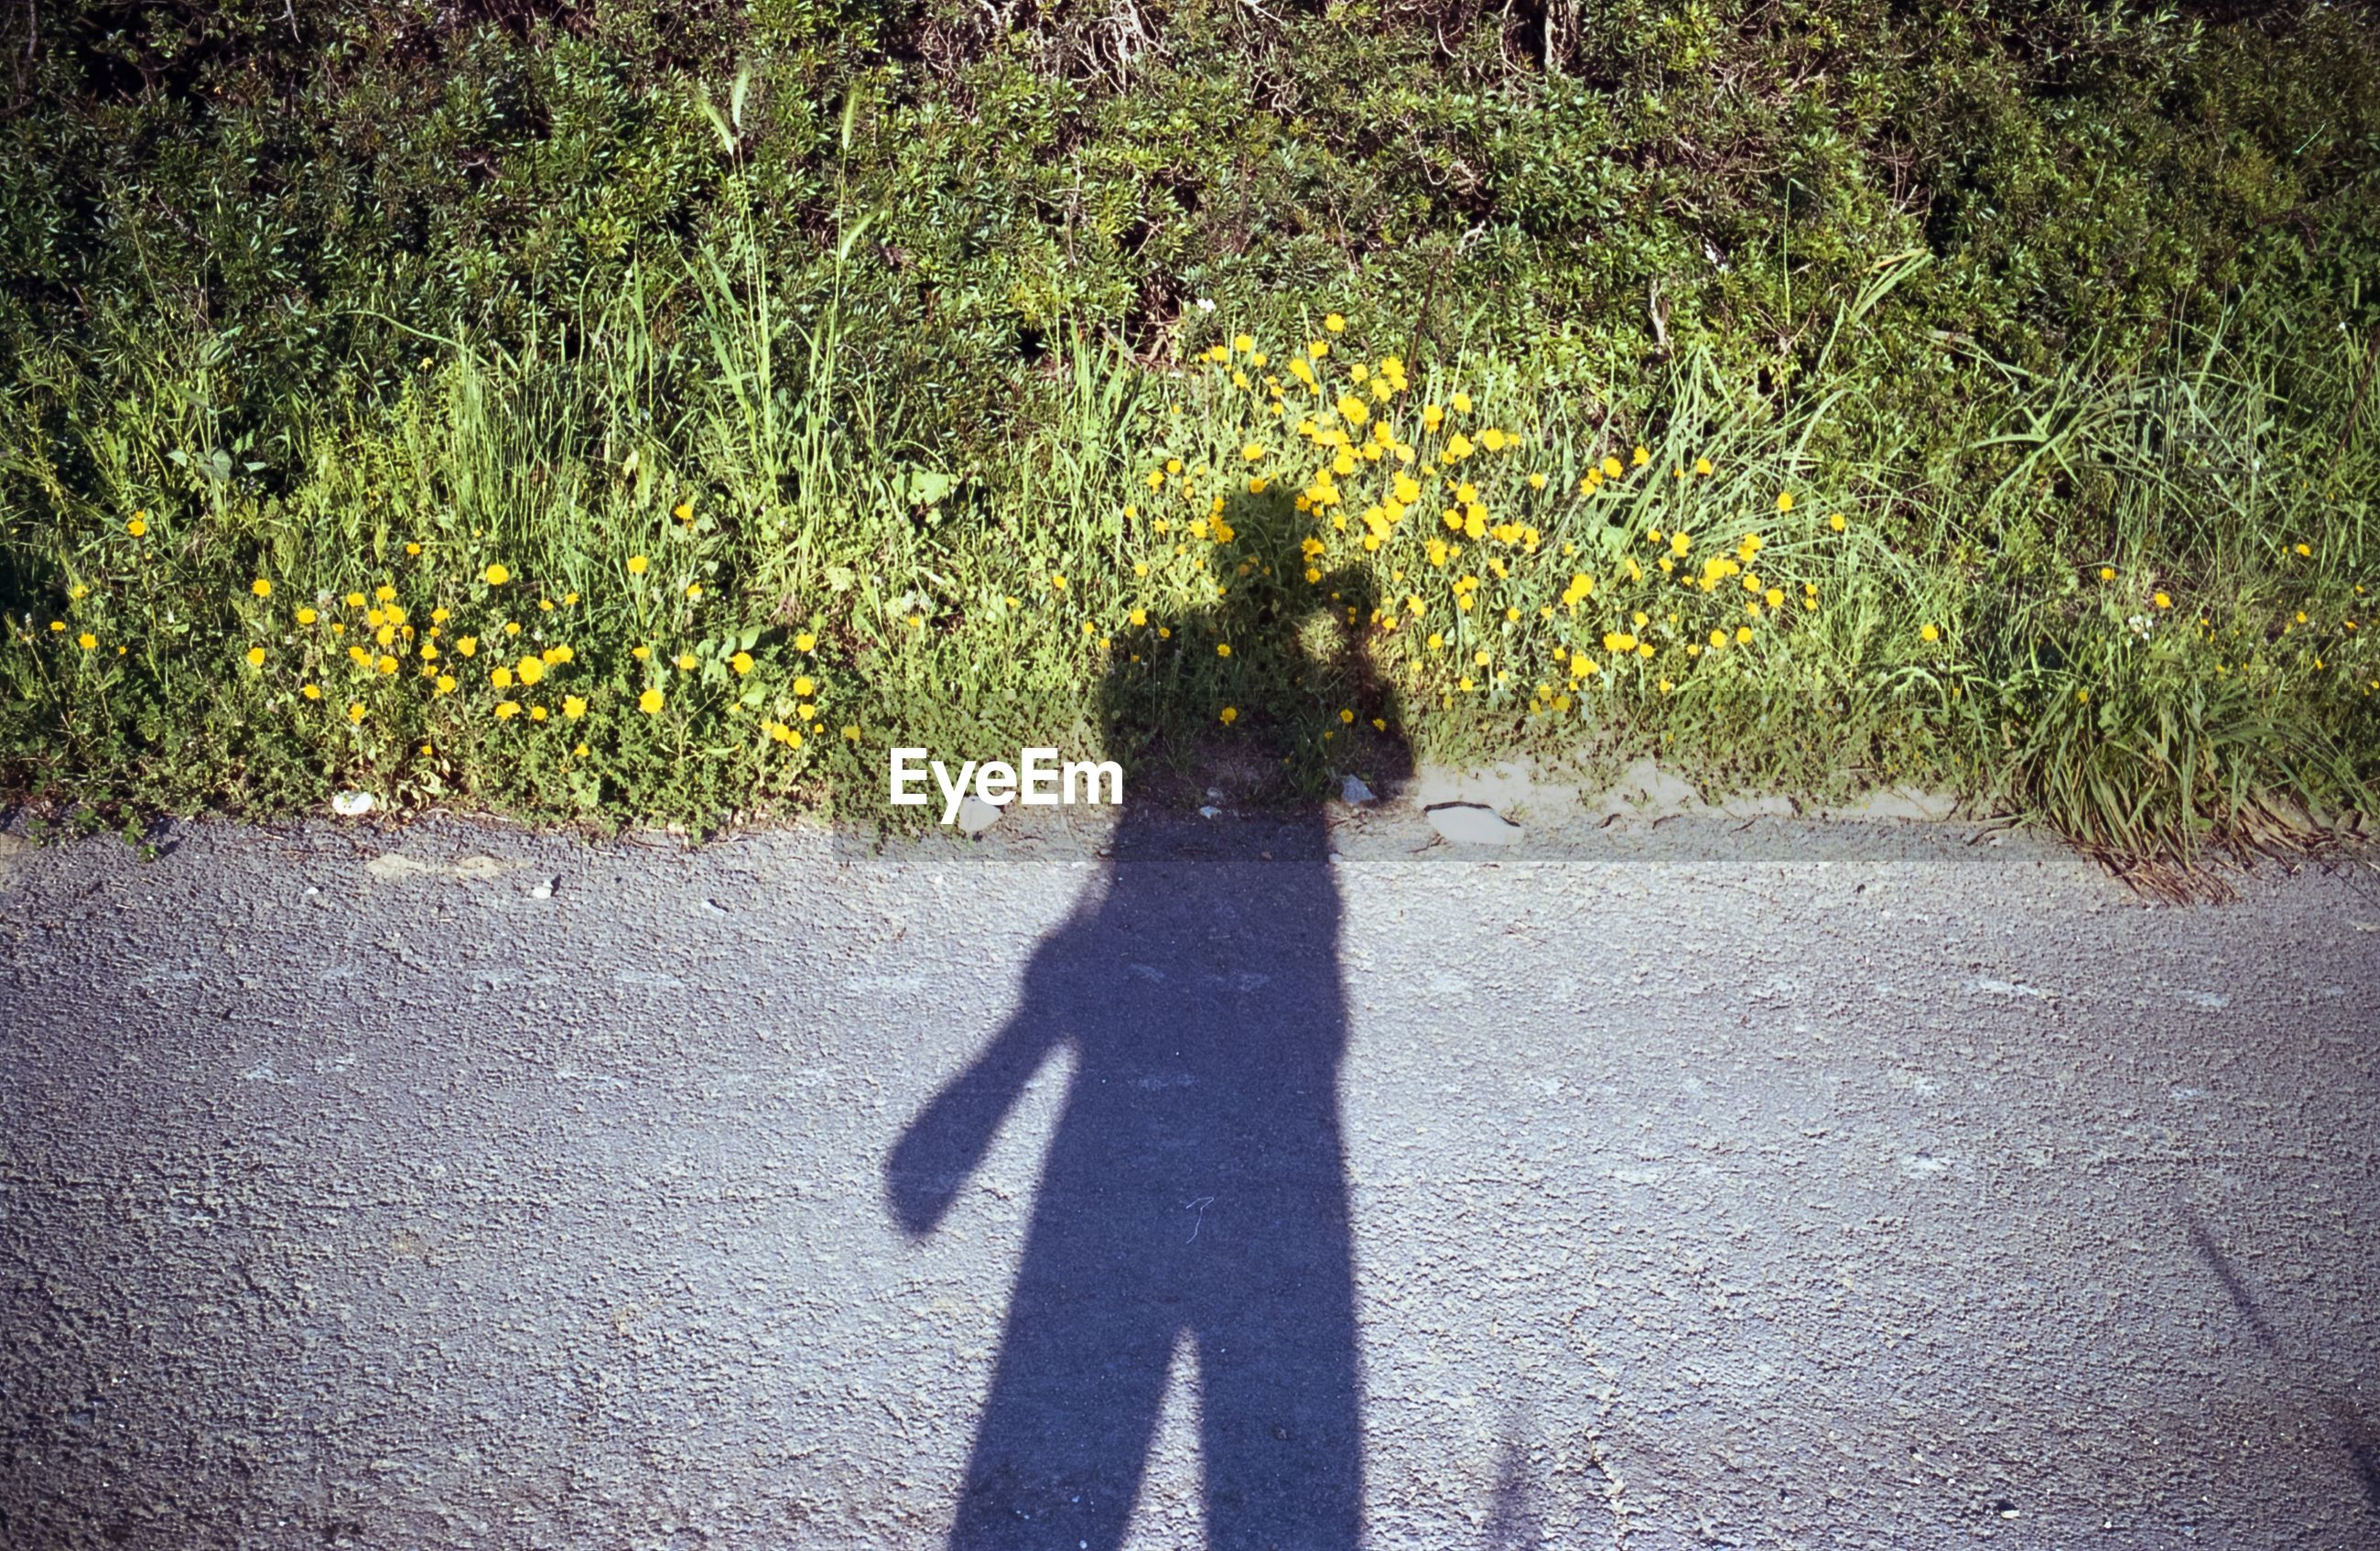 SHADOW OF PERSON ON ROAD BY FLOWERING PLANTS